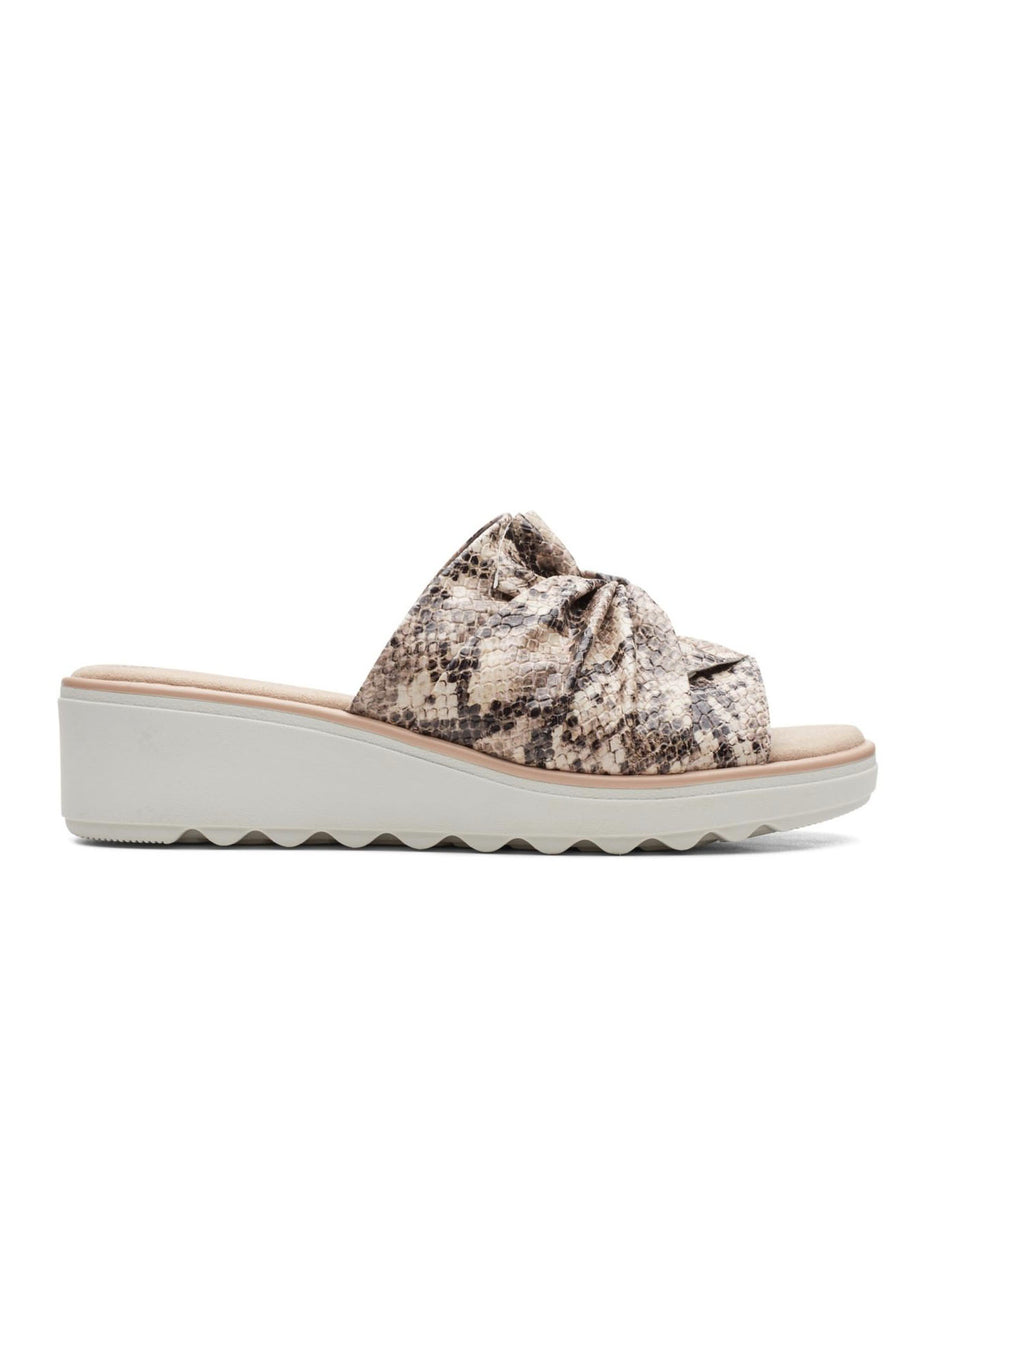 Clarks Jillian Leap in Taupe Snake